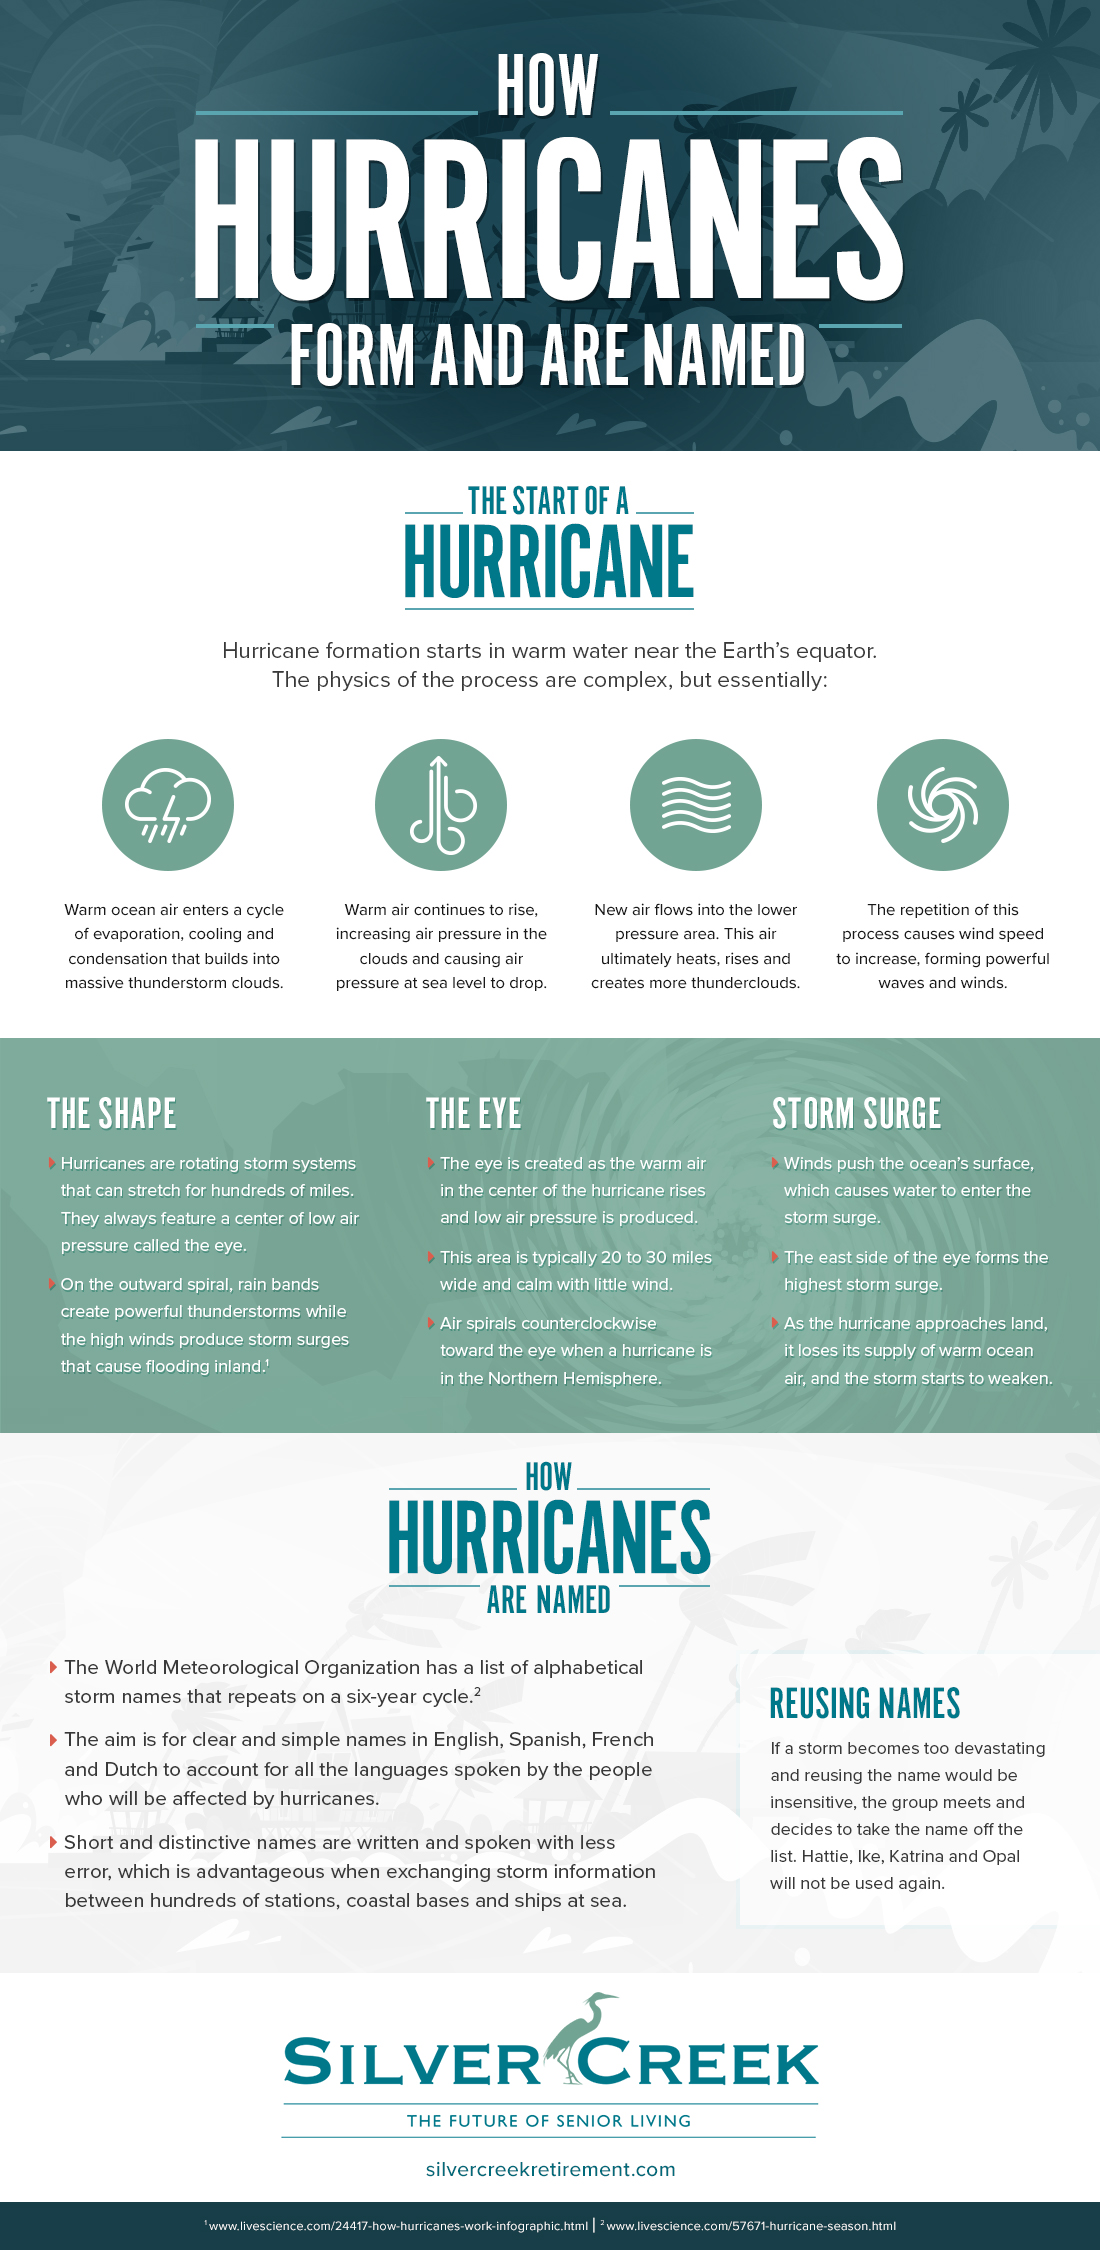 Hurricane Naming conventions. How do hurricanes get their names? Silver Creek Retirement can help with your family needs.